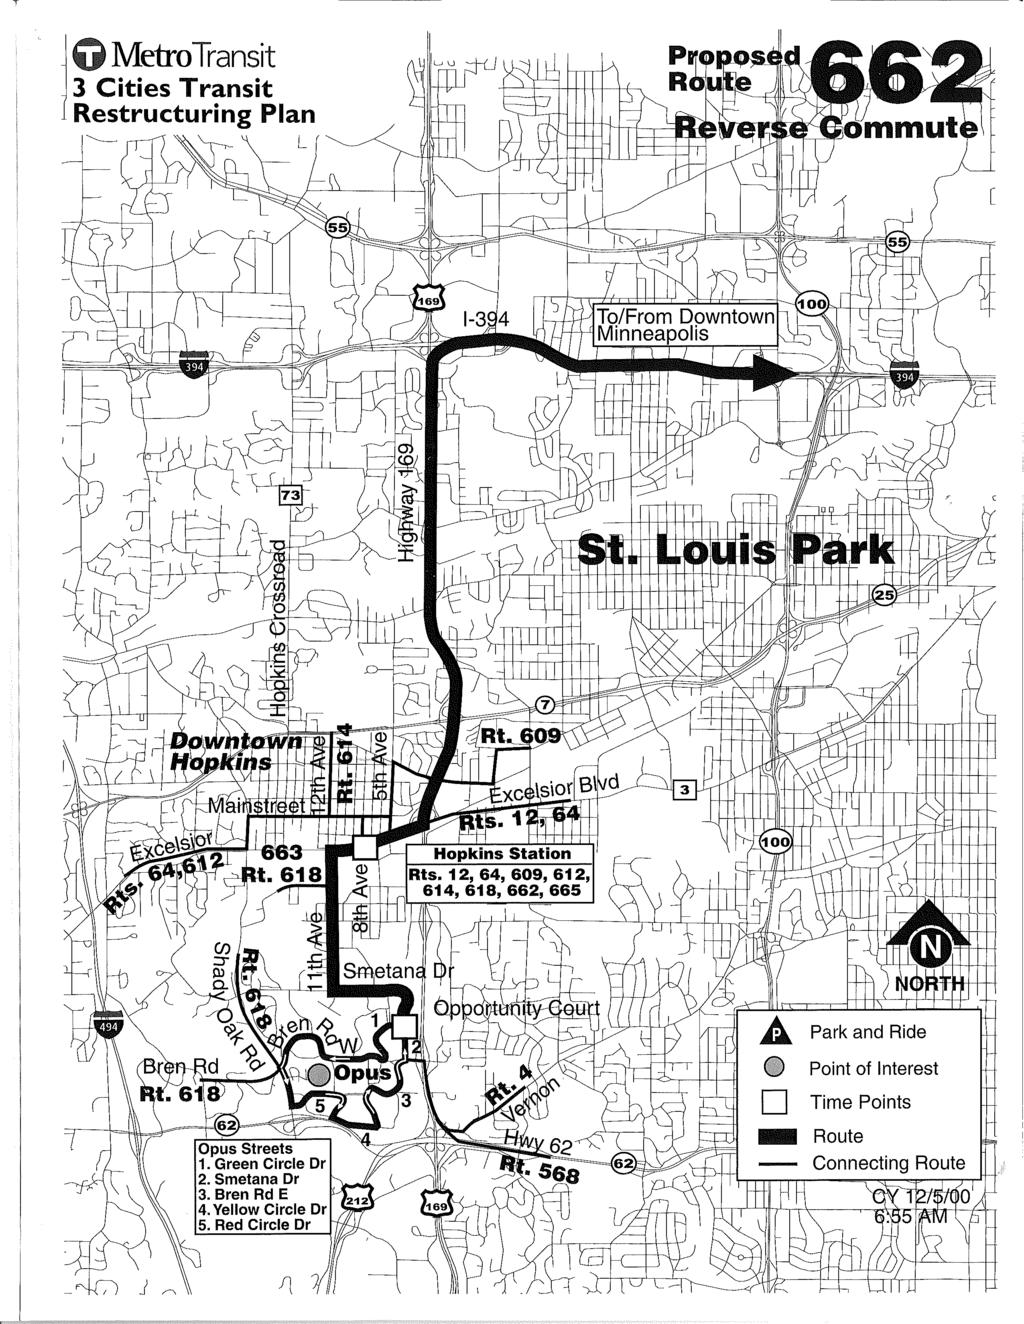 "j G MetroTransit 3 Cities Transit Restructuring Plan L [ Park and Ride =-----\==lj~~~,,62 ~:::::::""""=-~:l::...----, Opus Streets 1."